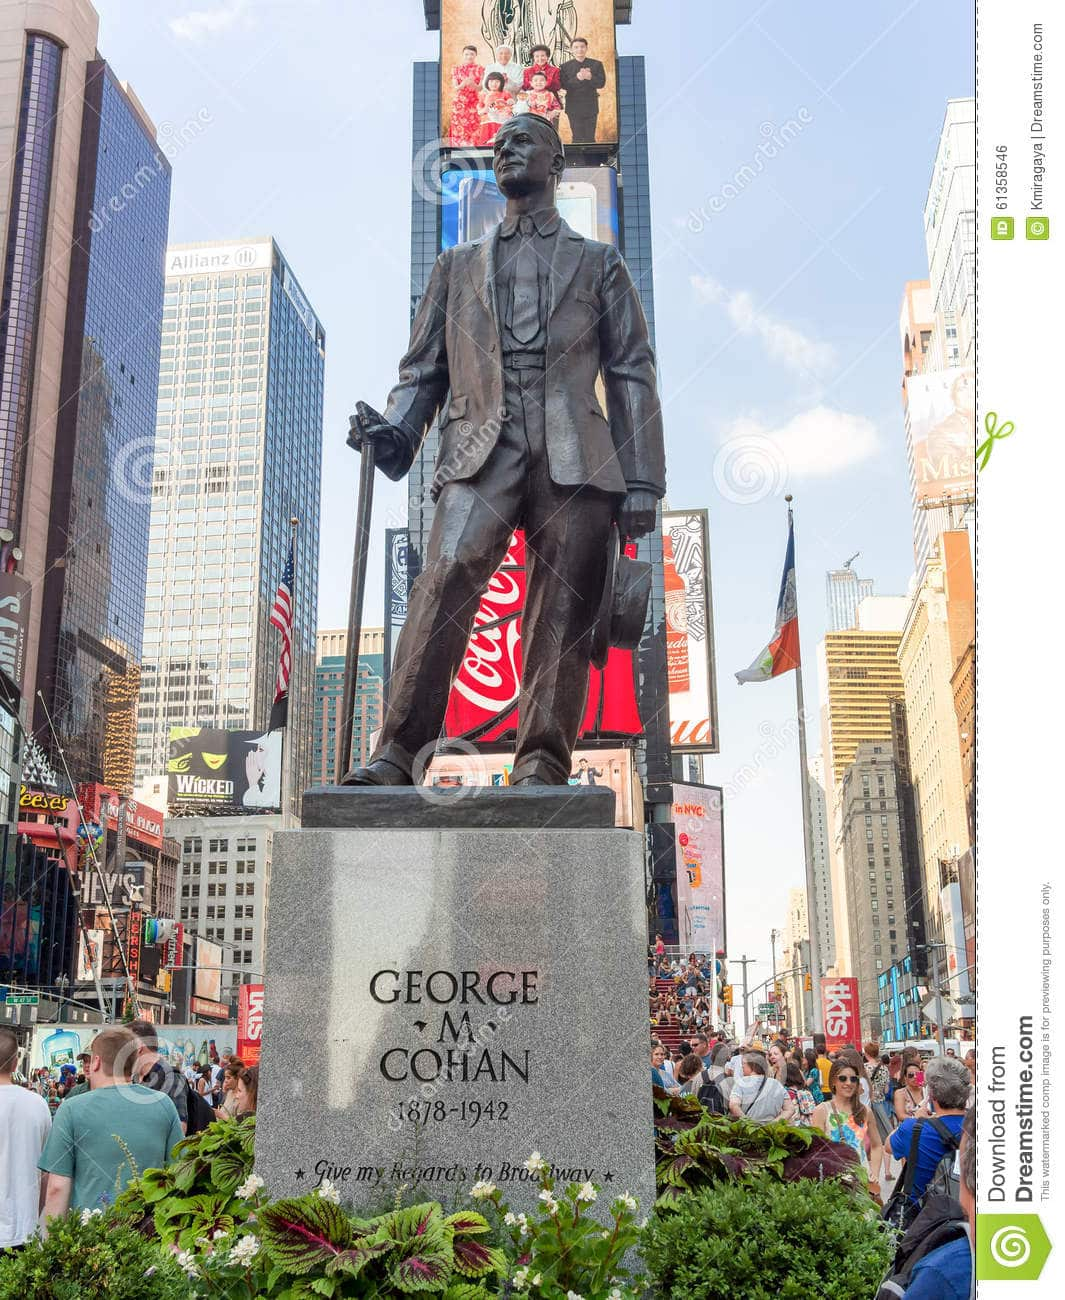 george-m-cohan-statue-times-square-new-york-city-usa-august-61358546